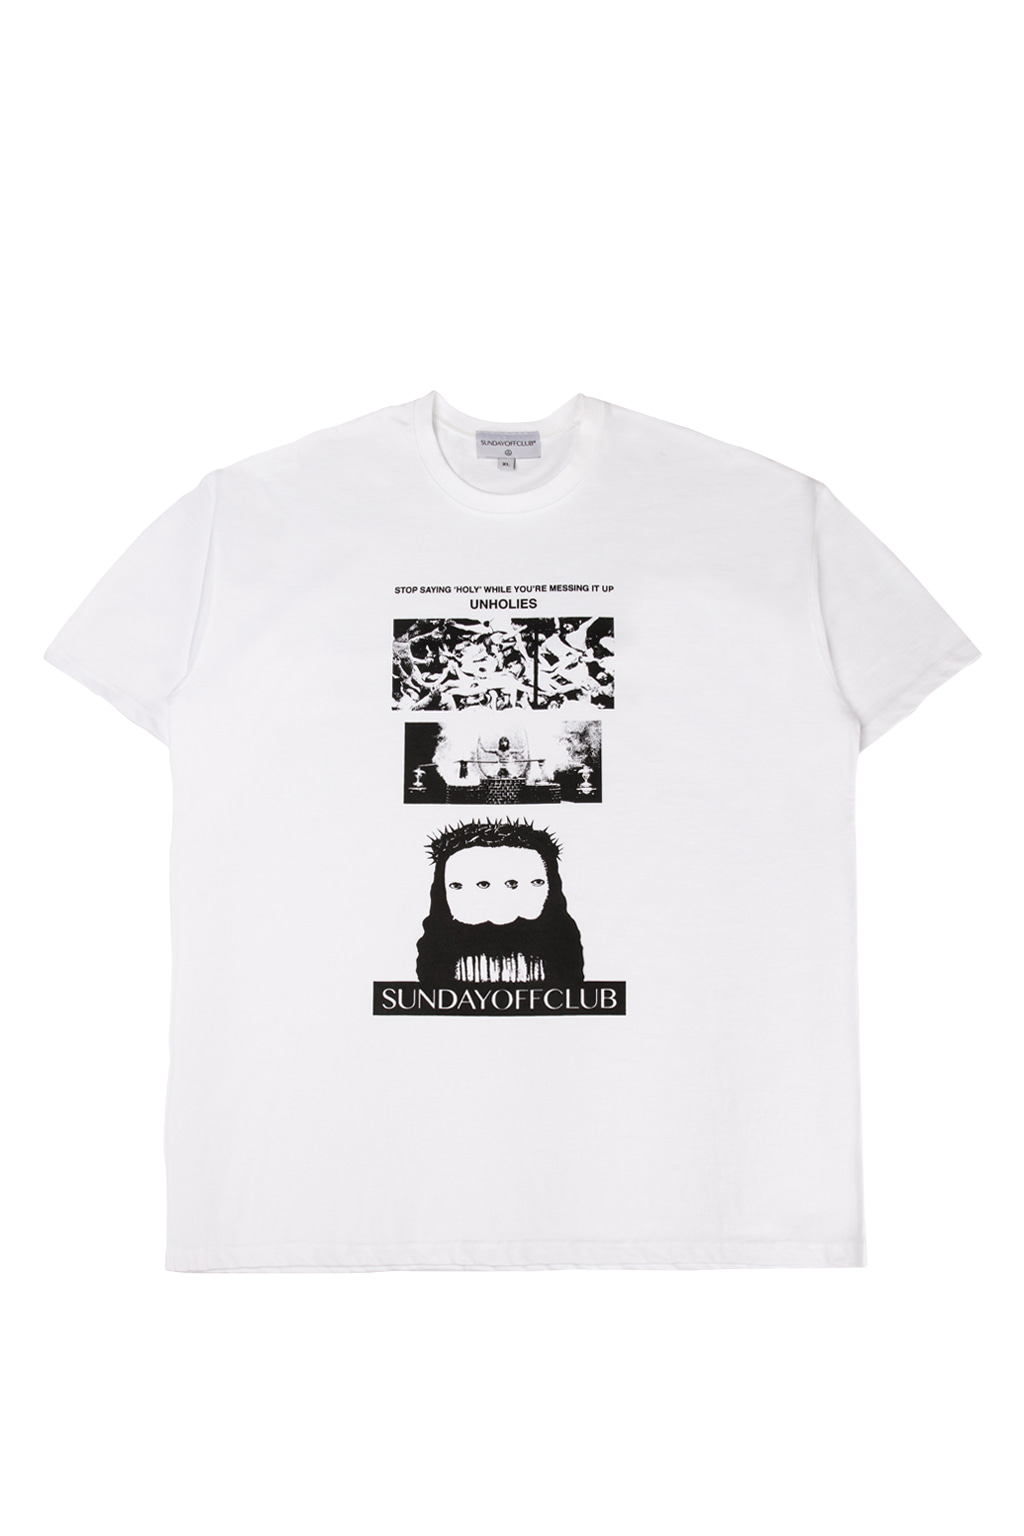 holy t-shirts - white